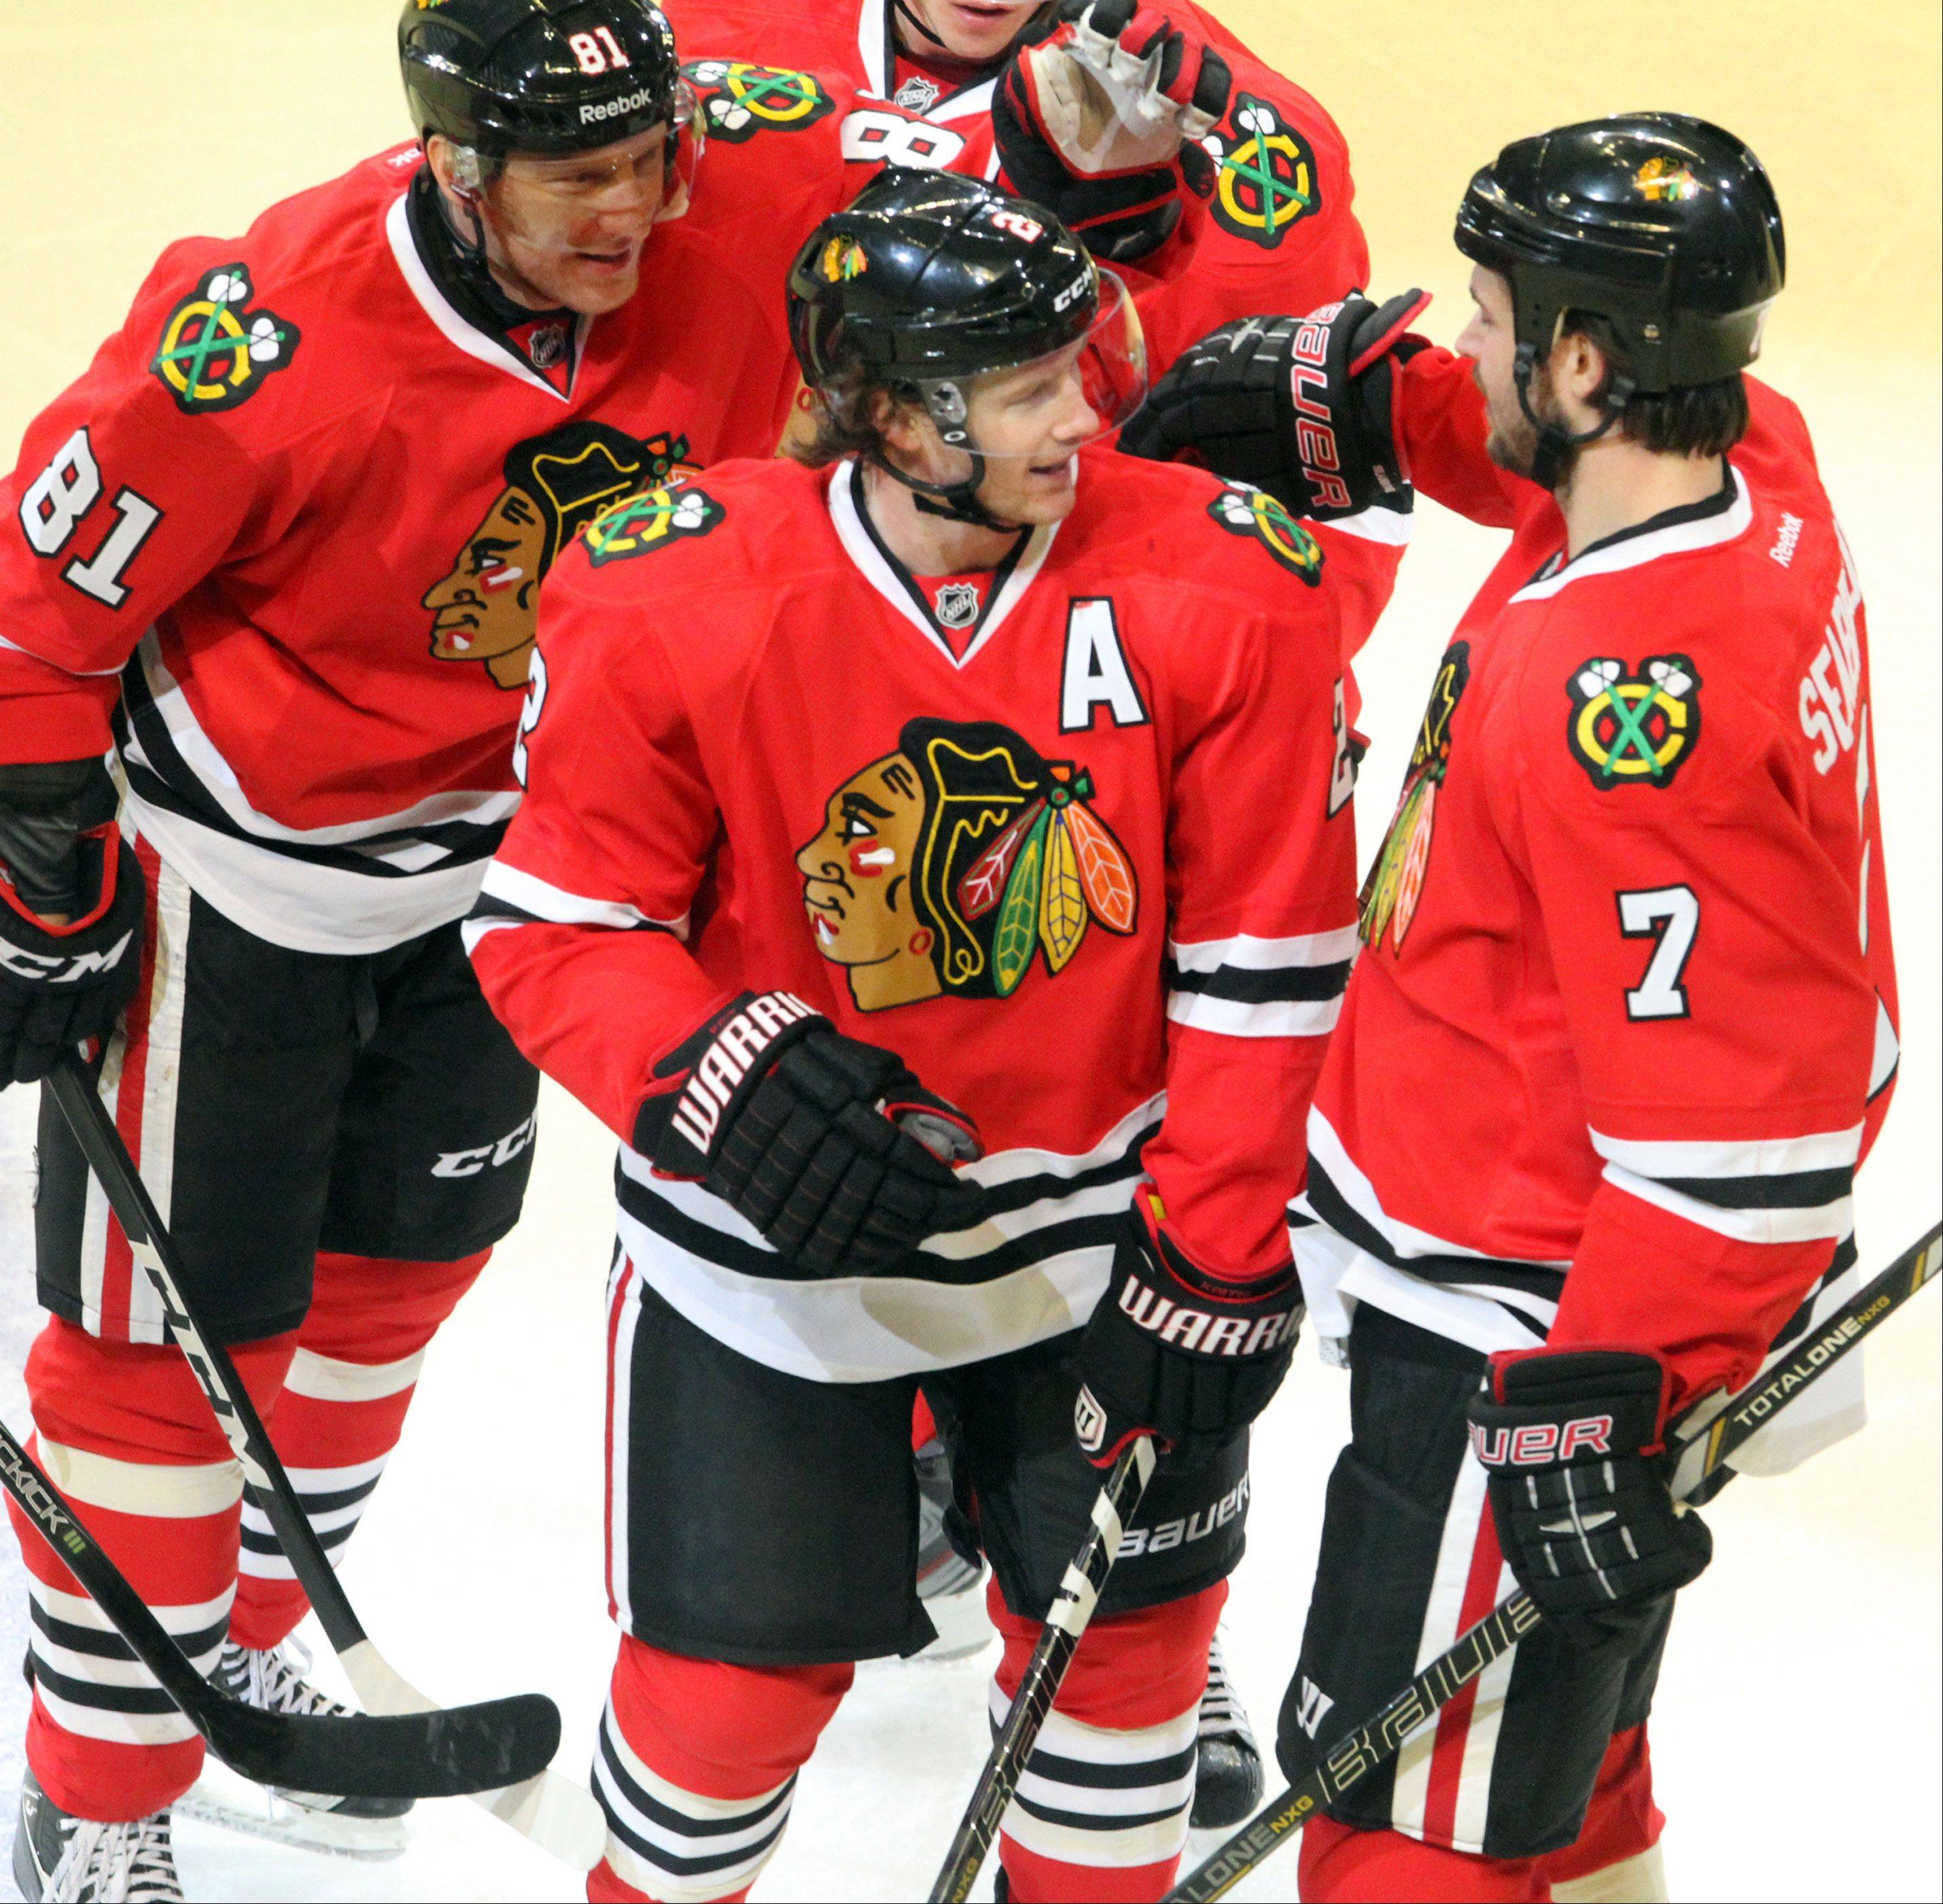 Chicago Blackhawks defenseman Duncan Keith gets a hand from Chicago Blackhawks right wing Marian Hossa, left, and Chicago Blackhawks defenseman Brent Seabrook after scoring the second goal of the game, during the second period.